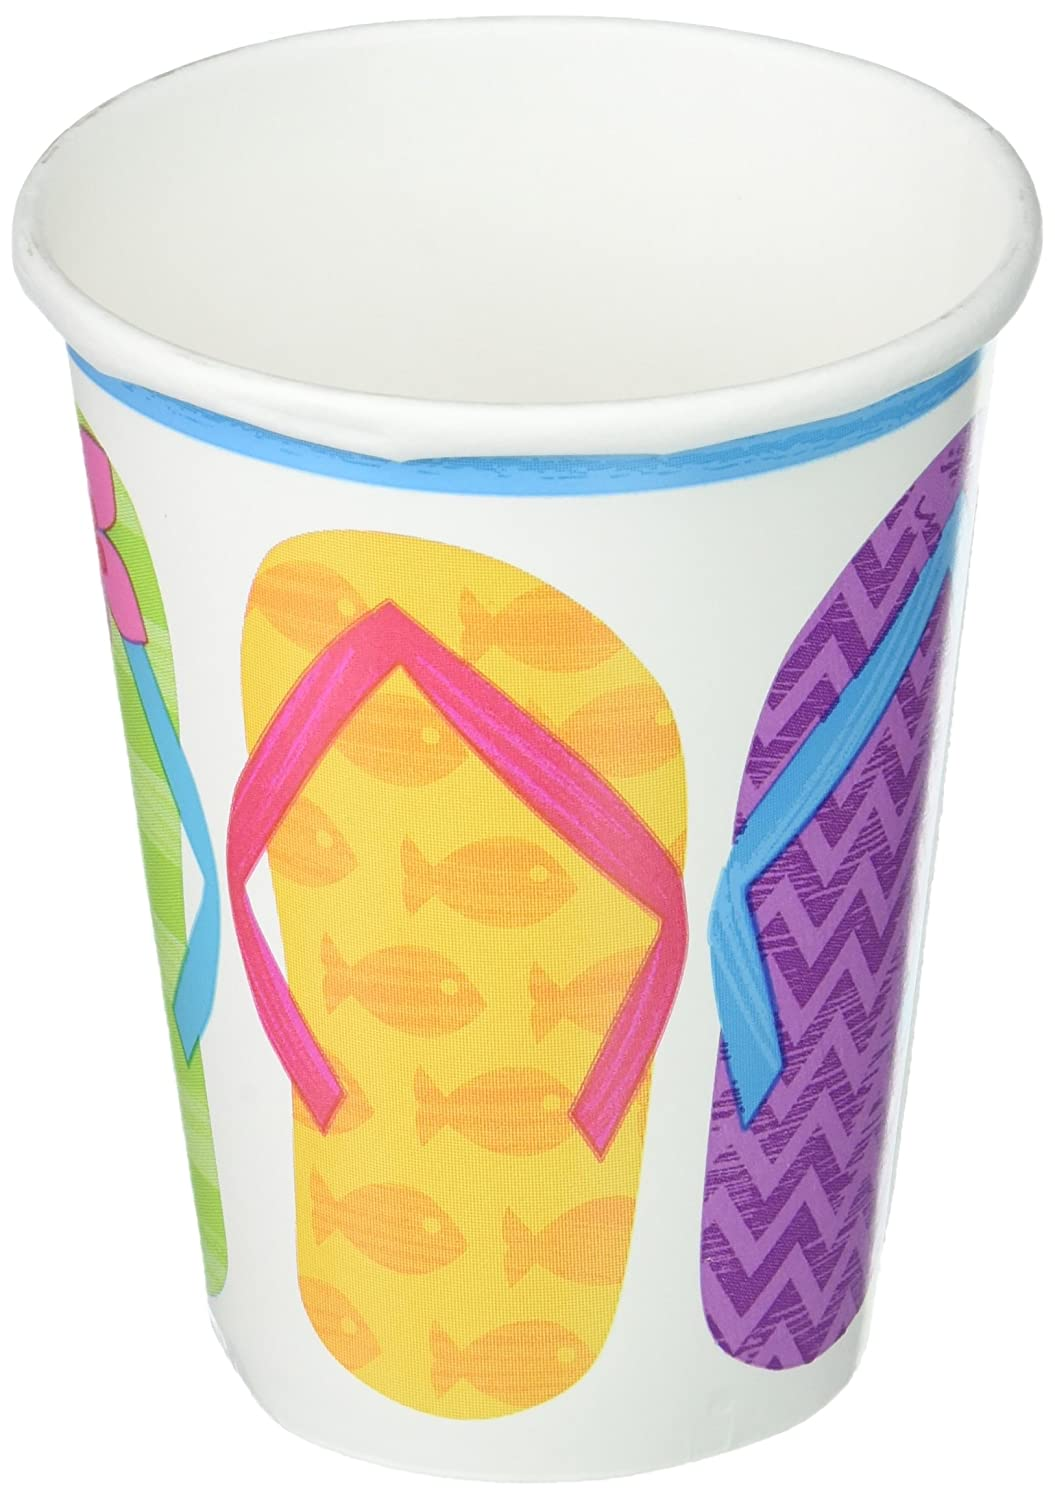 b2b6a4a329966 Sun-Sational Summer Luau Party Colorful Flip Flops Cups Tableware